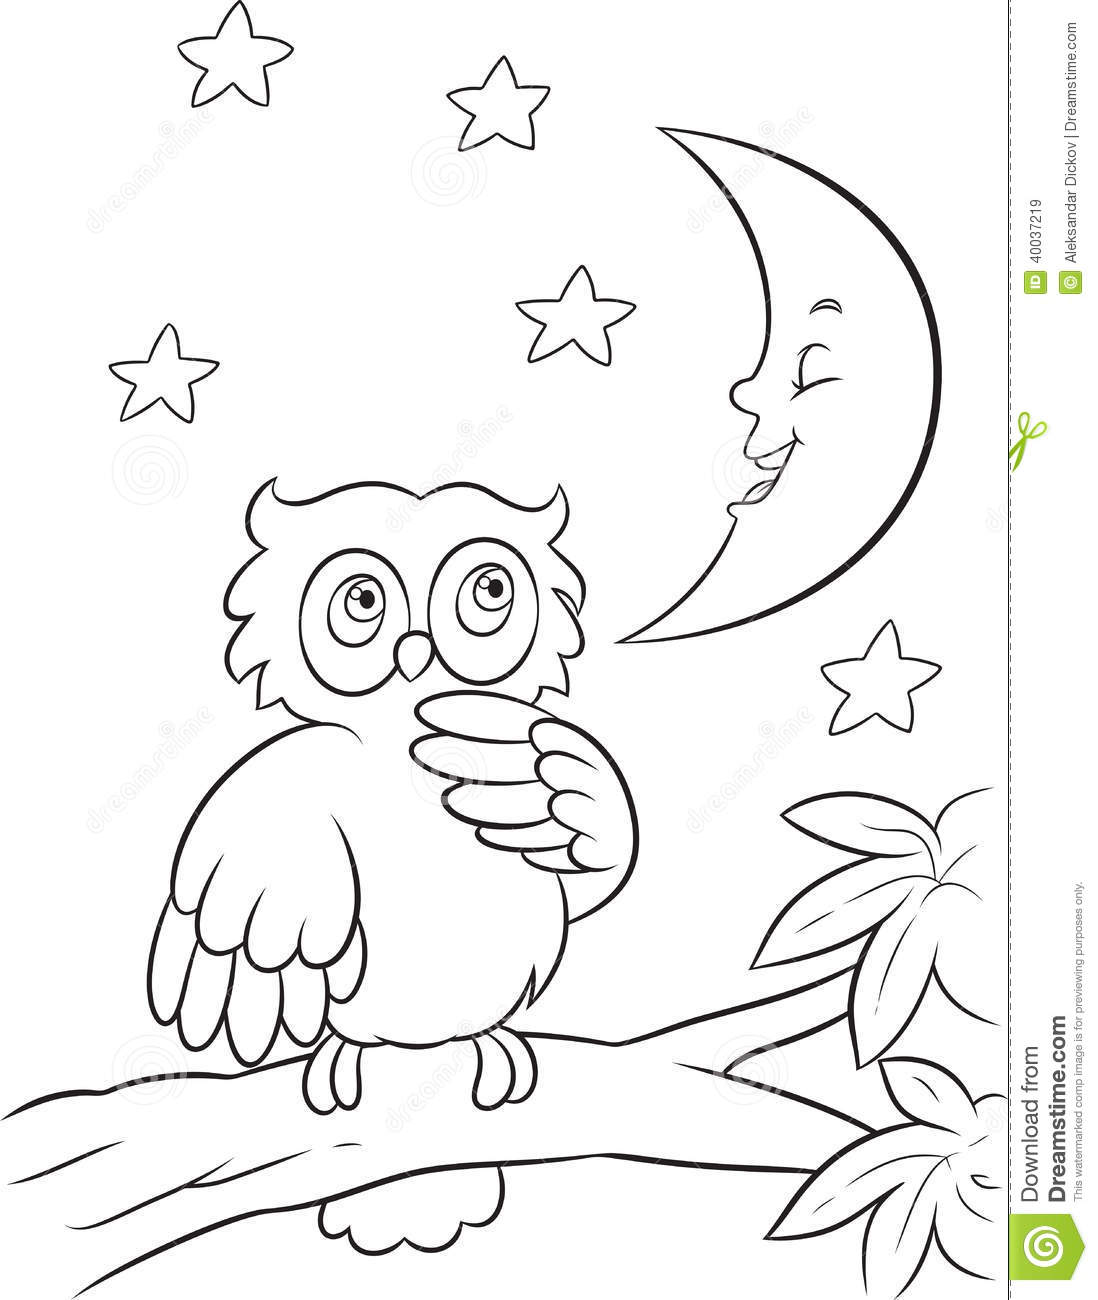 Owl Coloring Page Stock Vector Illustration Of Moon 40037219